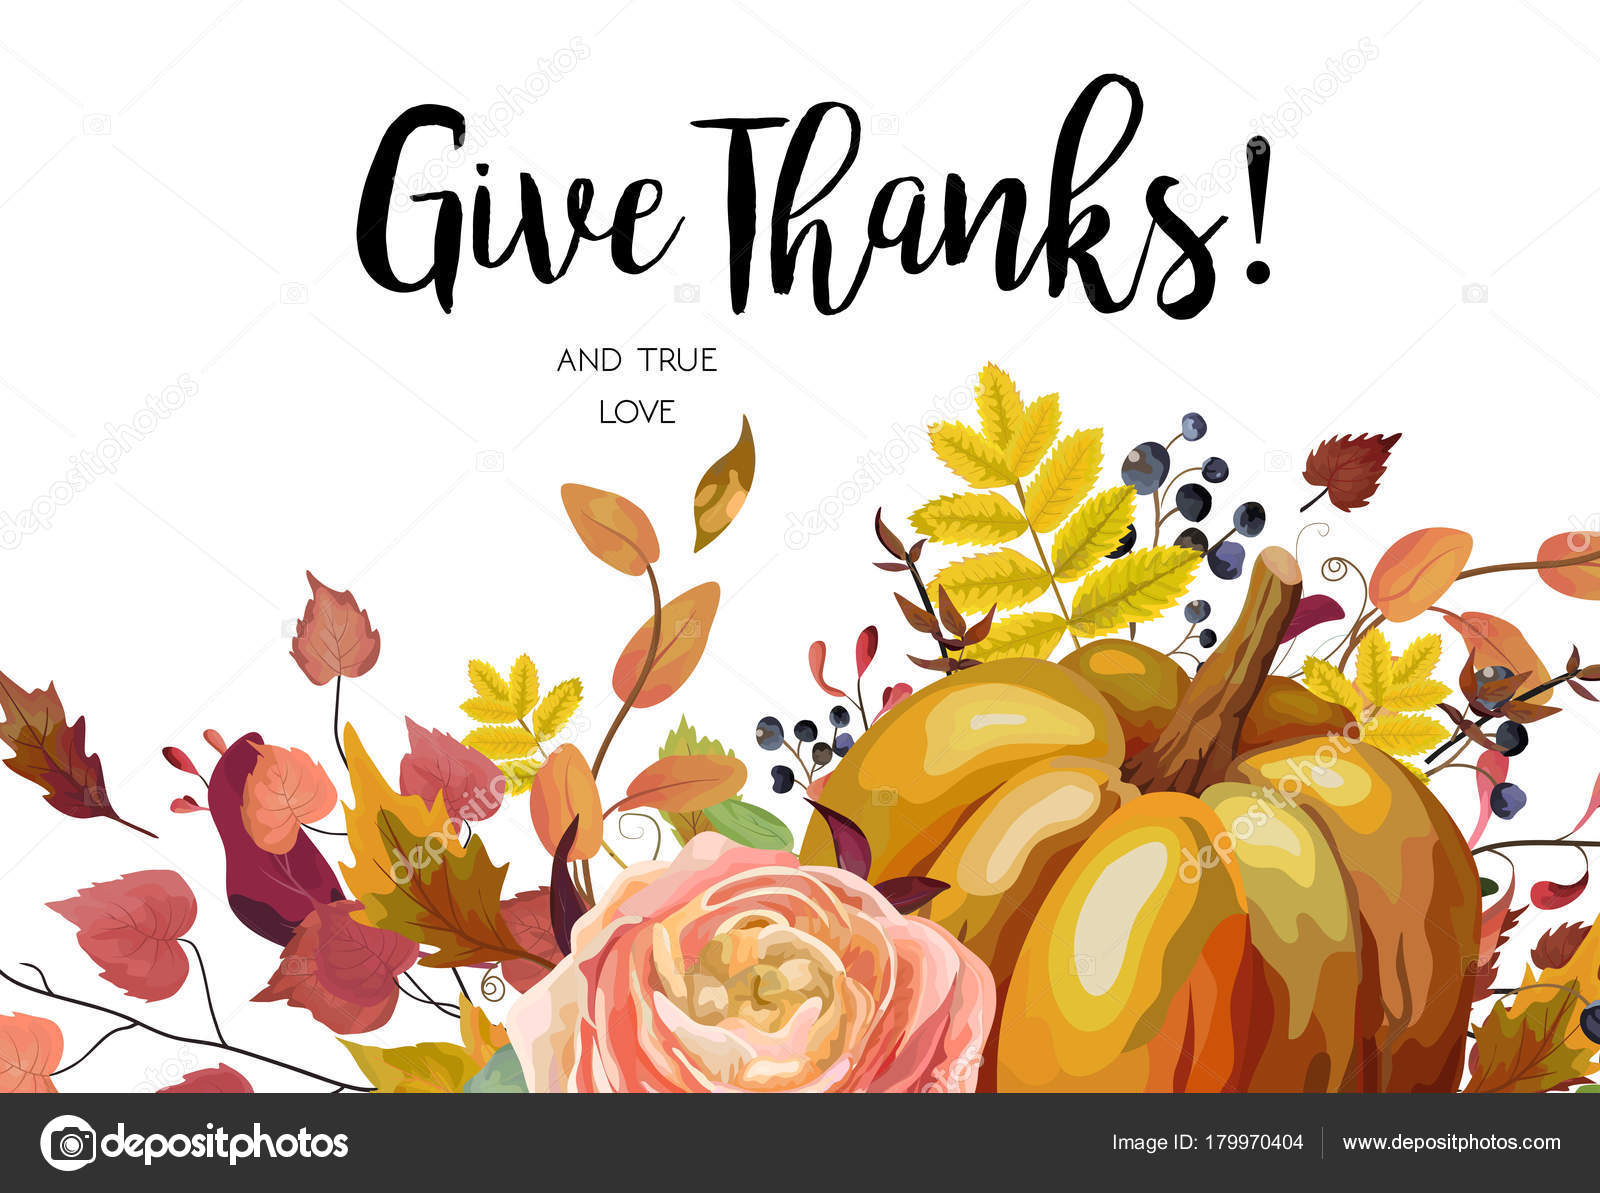 Happy Thanksgiving Vector Floral Watercolor Style Hand Drawn Greeting Card Design Autumn Season Pumpkin Pink Ranunculus